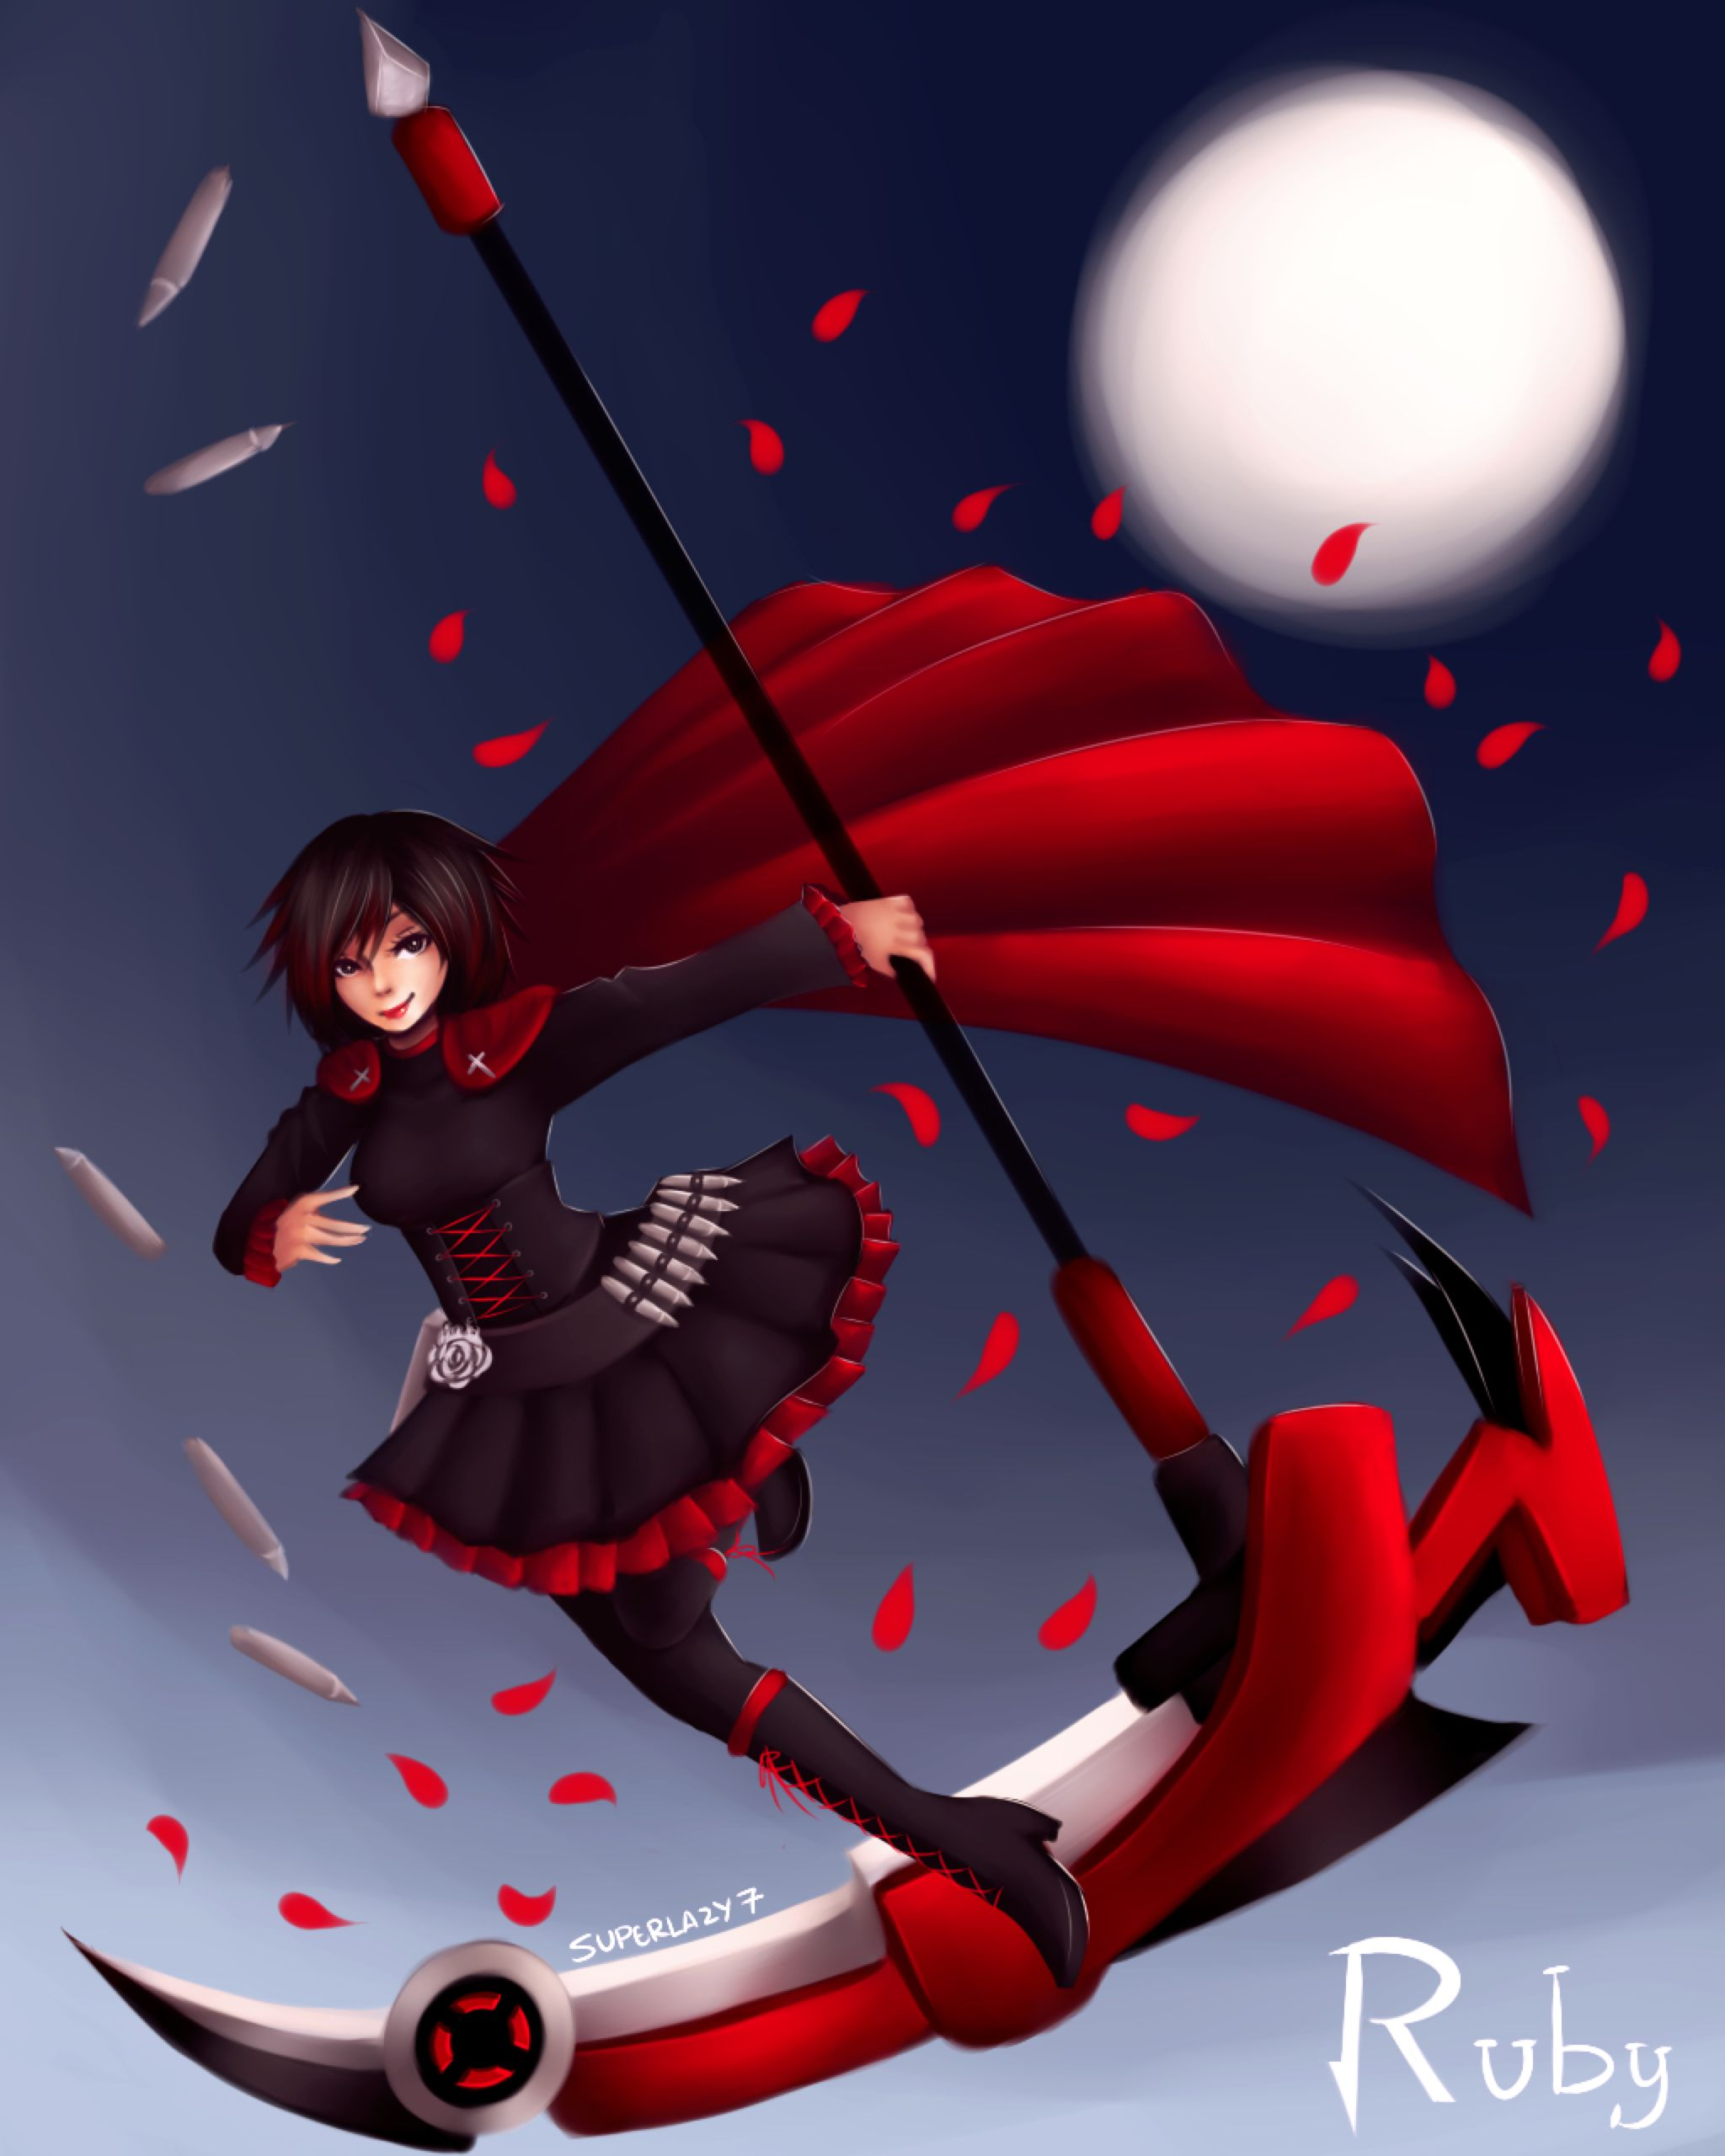 Rwby by SuperLazy7 on DeviantArt Rwby anime, Rwby, Rwby